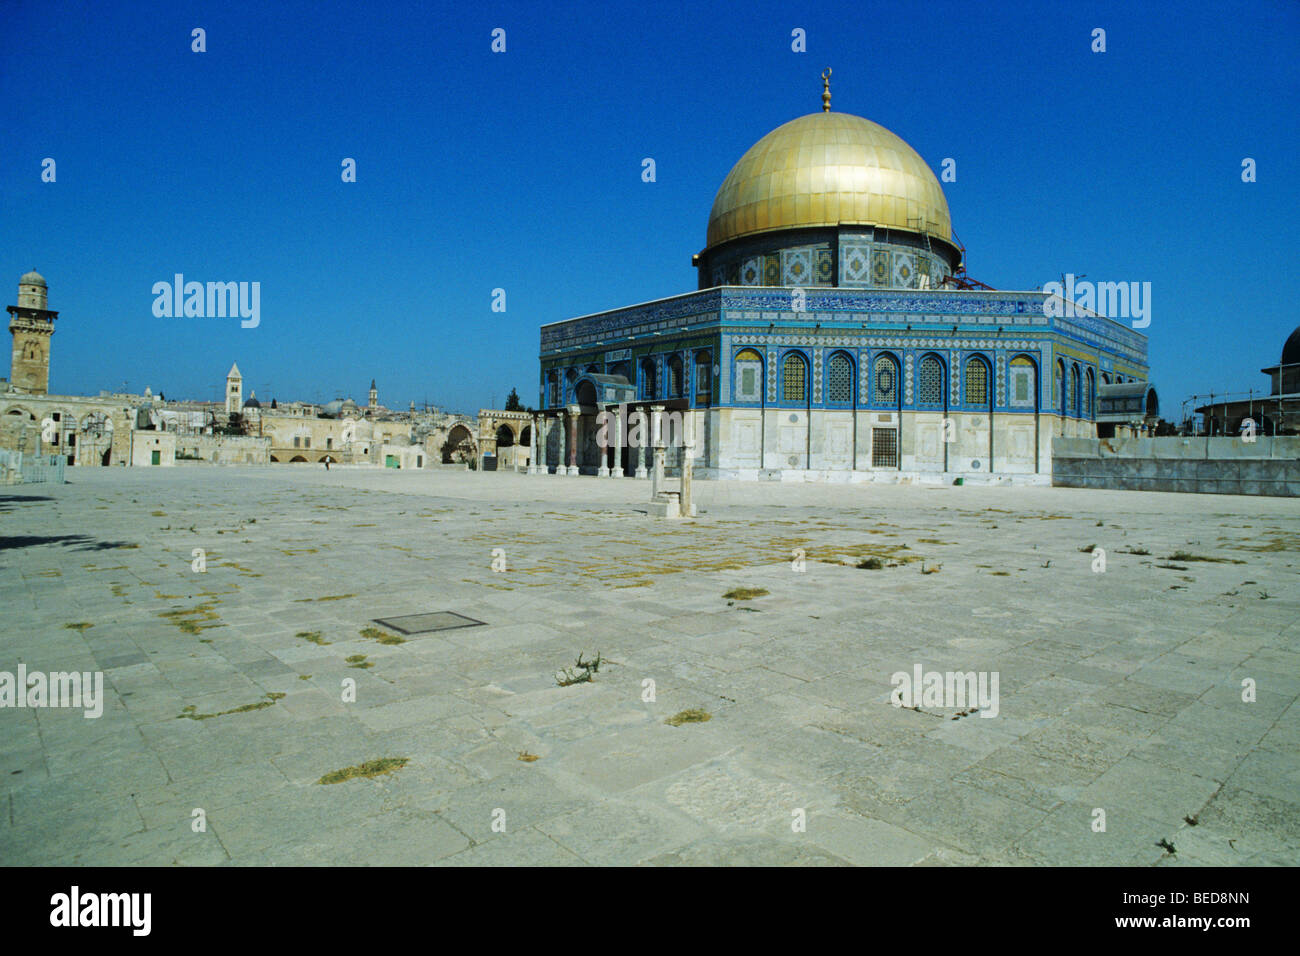 Dome of the Rock, Qubbet es-Sakhra, on the Temple Mount, Jerusalem, Israel, Near East, Orient - Stock Image